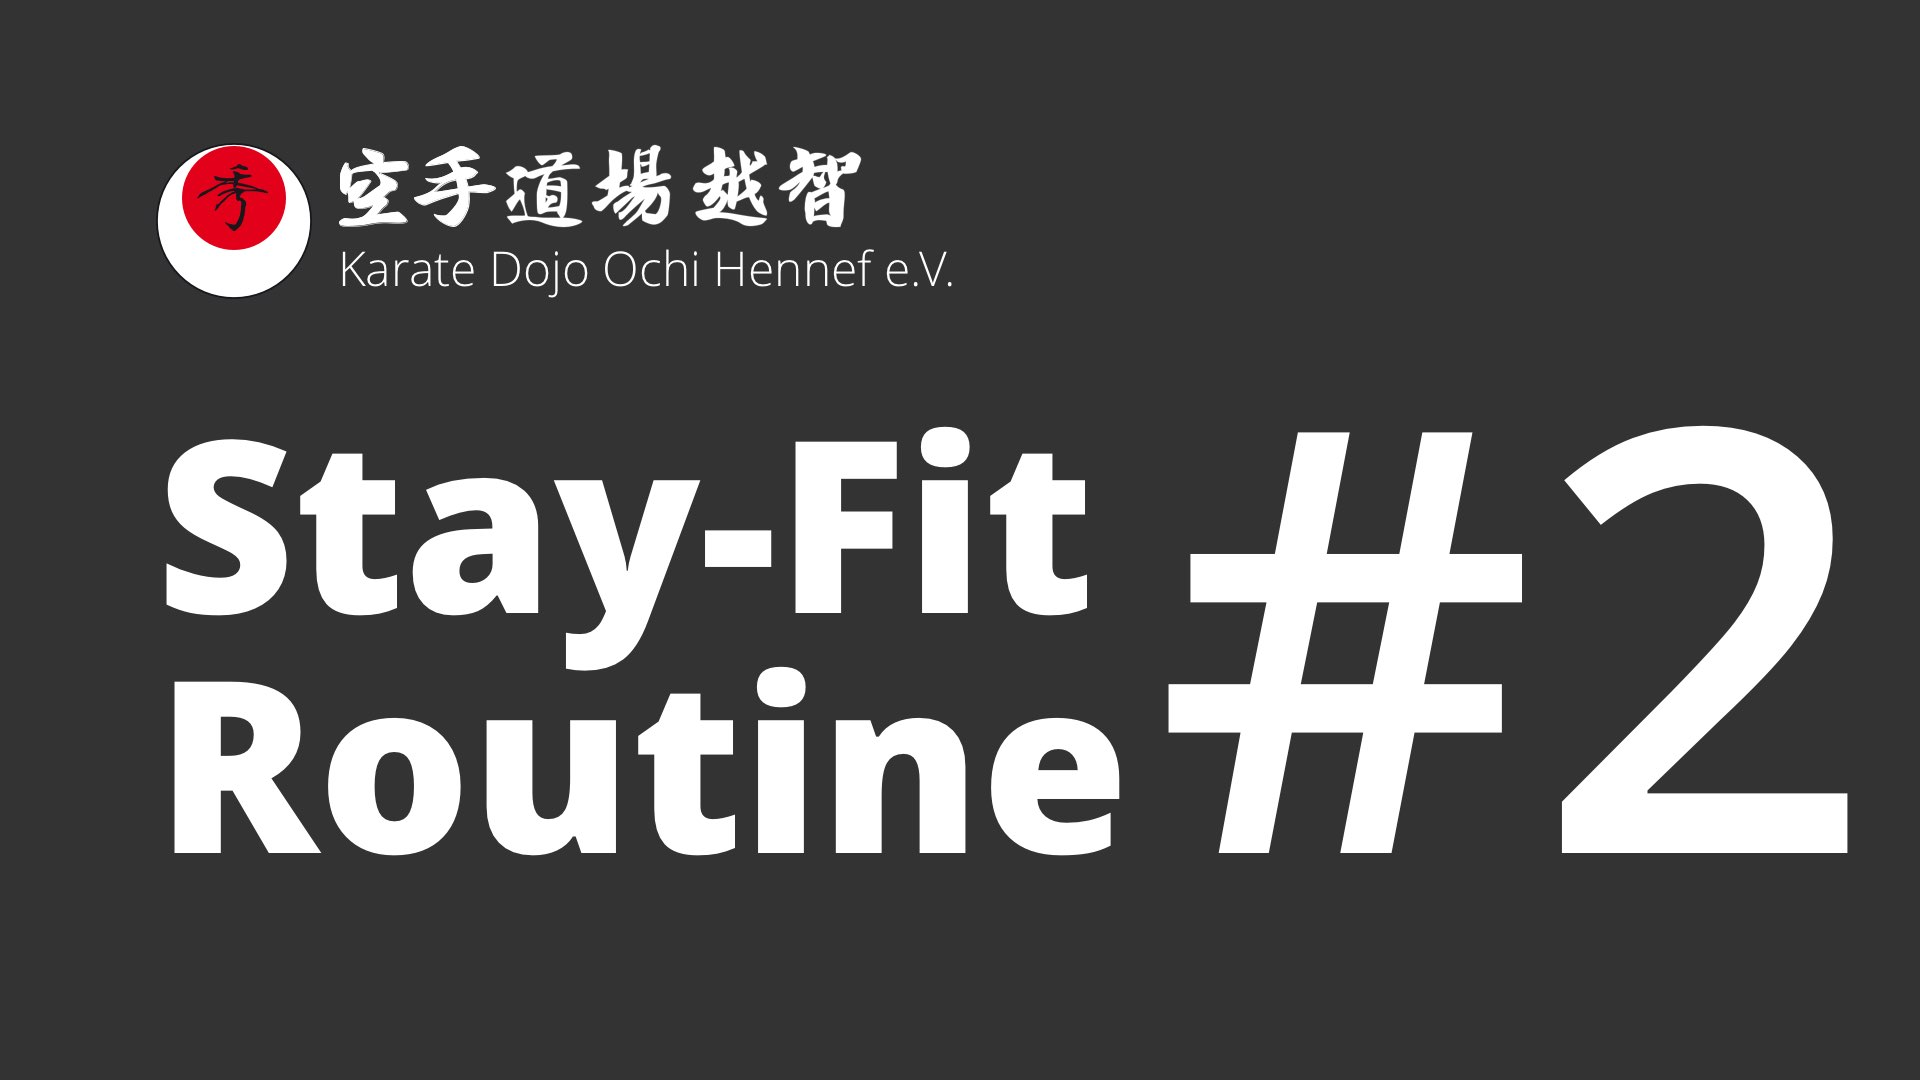 2. Stay-Fit-Routine